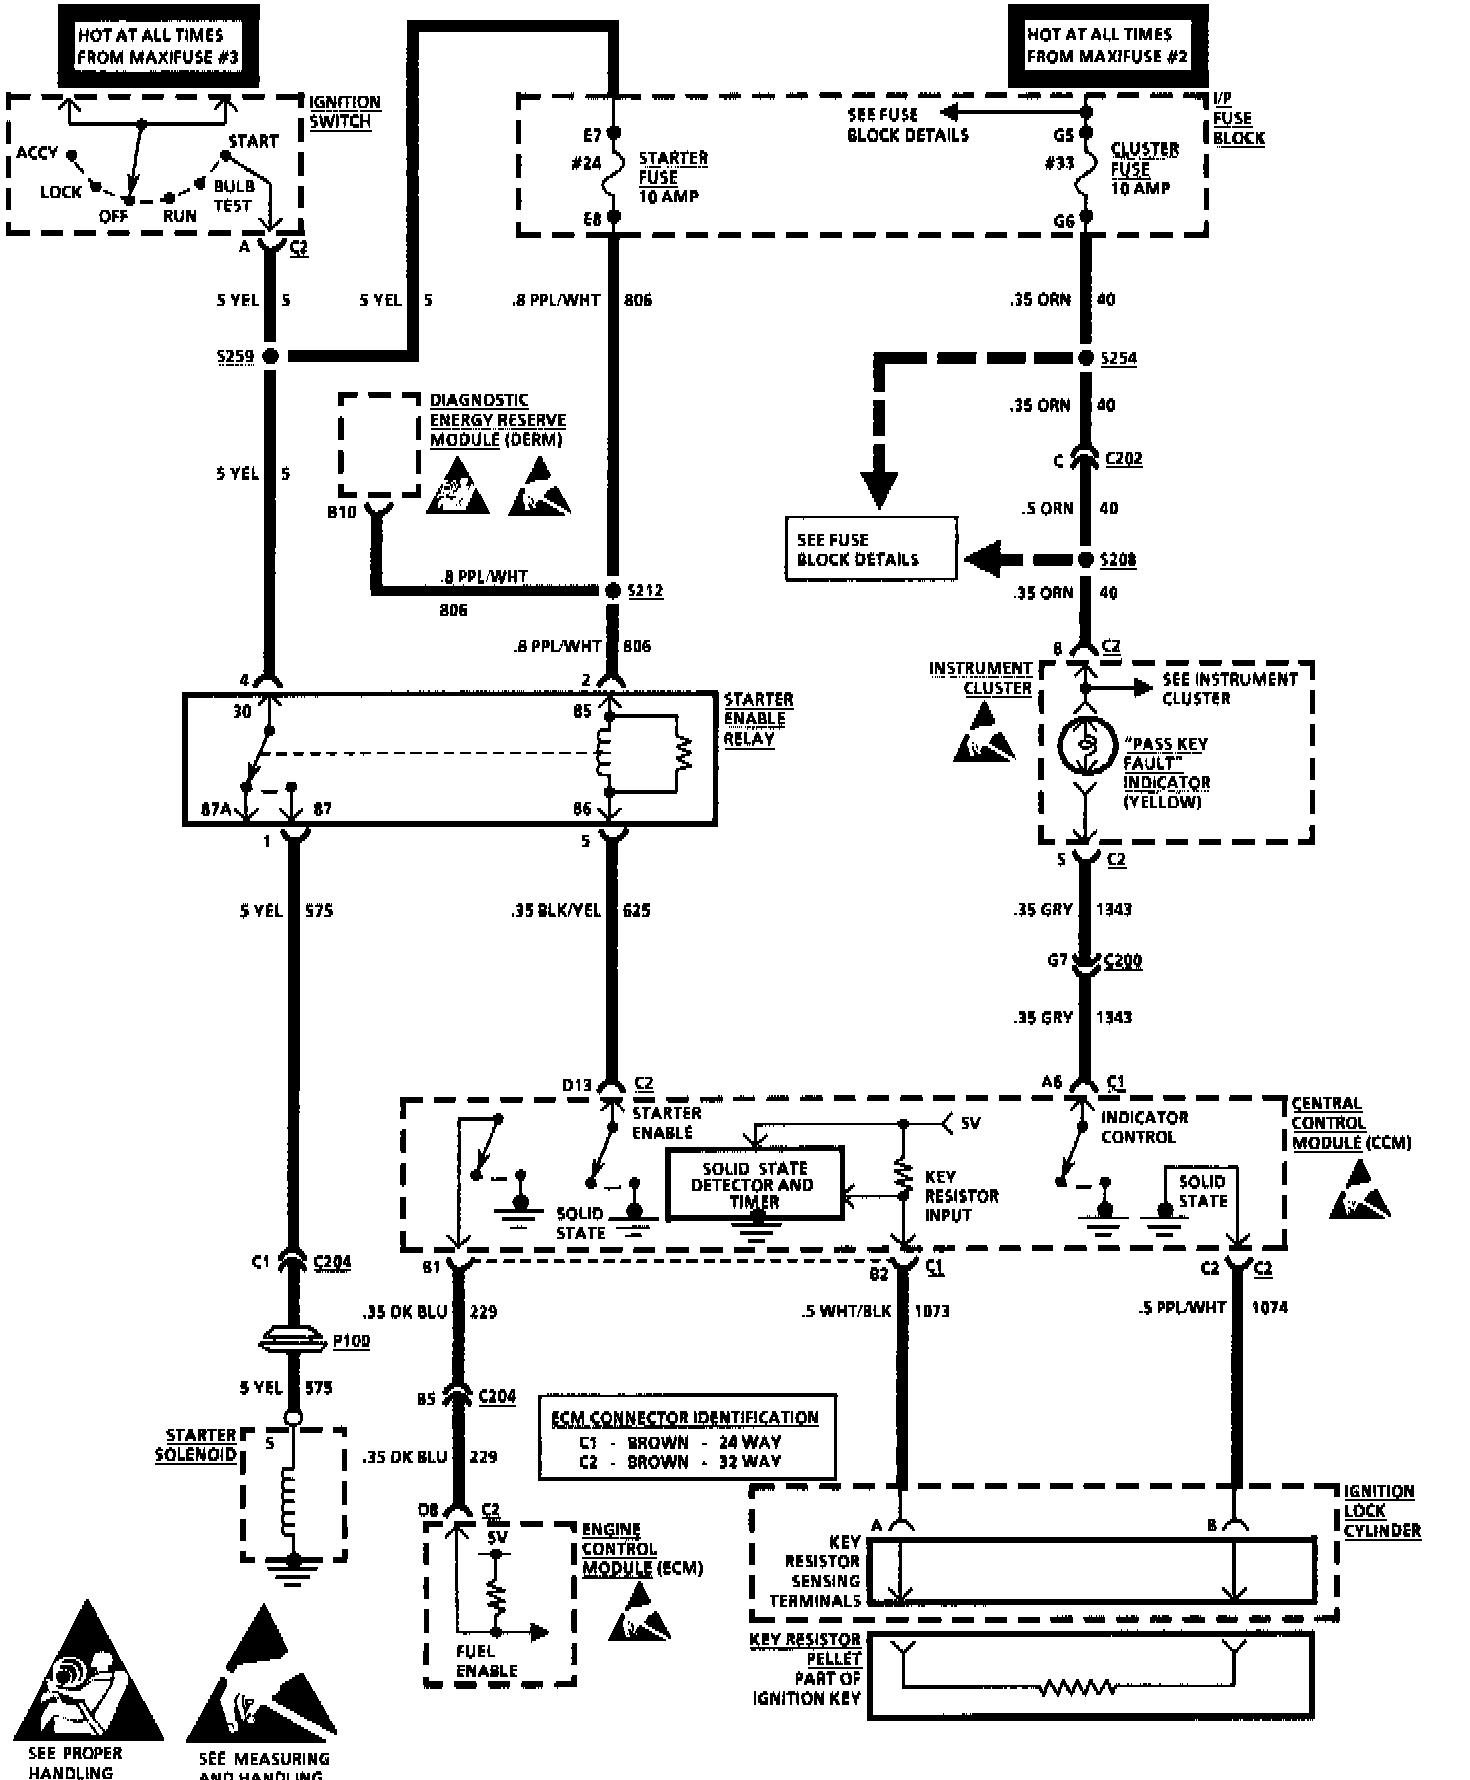 ☑ 1990 fleetwood motorhome wiring diagram hd quality ☑  booch-ood.twirlinglucca.it  diagram database - twirlinglucca.it